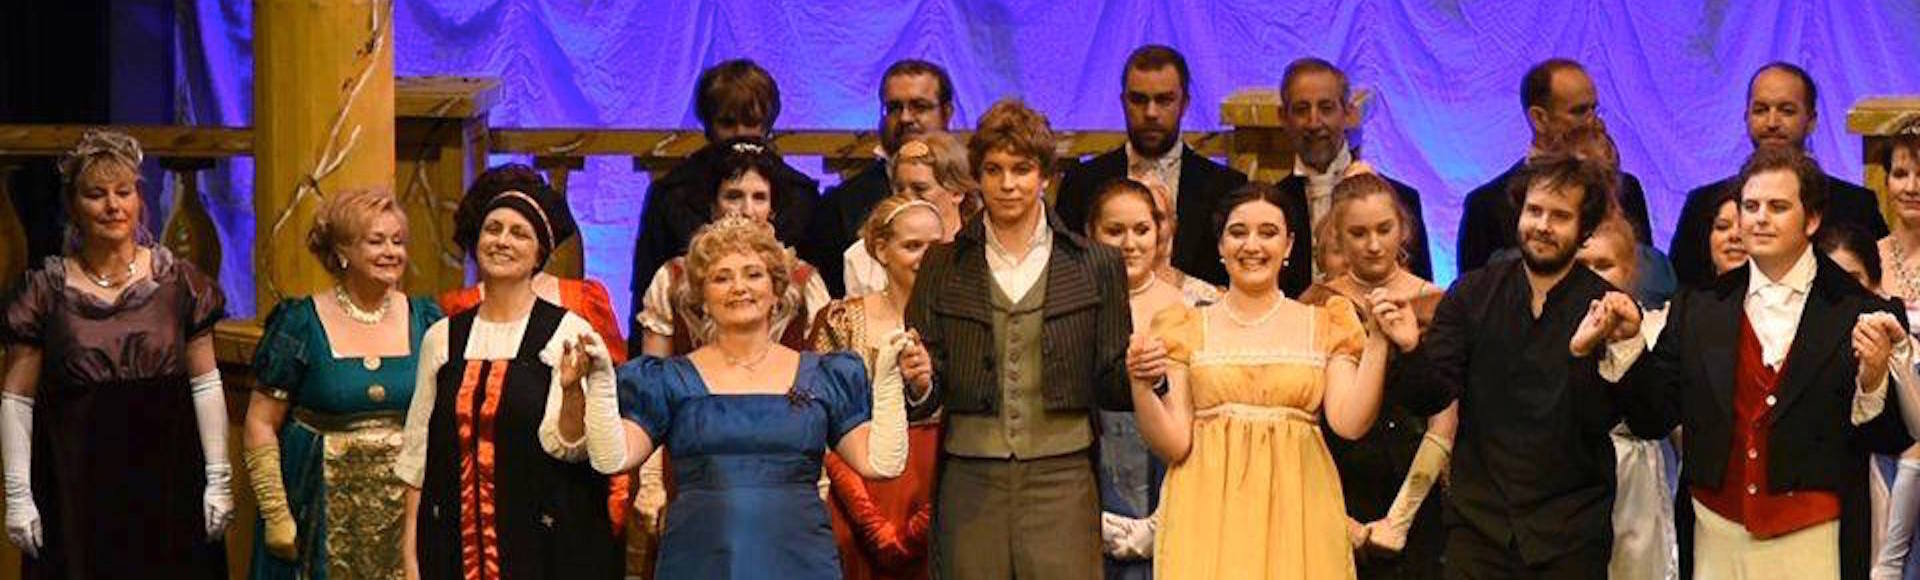 Colour photograph of the cast and conductor on stage at the end of a production of the opera, Eugene Onegin, by Fife Opera, (Courtesy of Doug Taylor on behalf of Fife Opera)